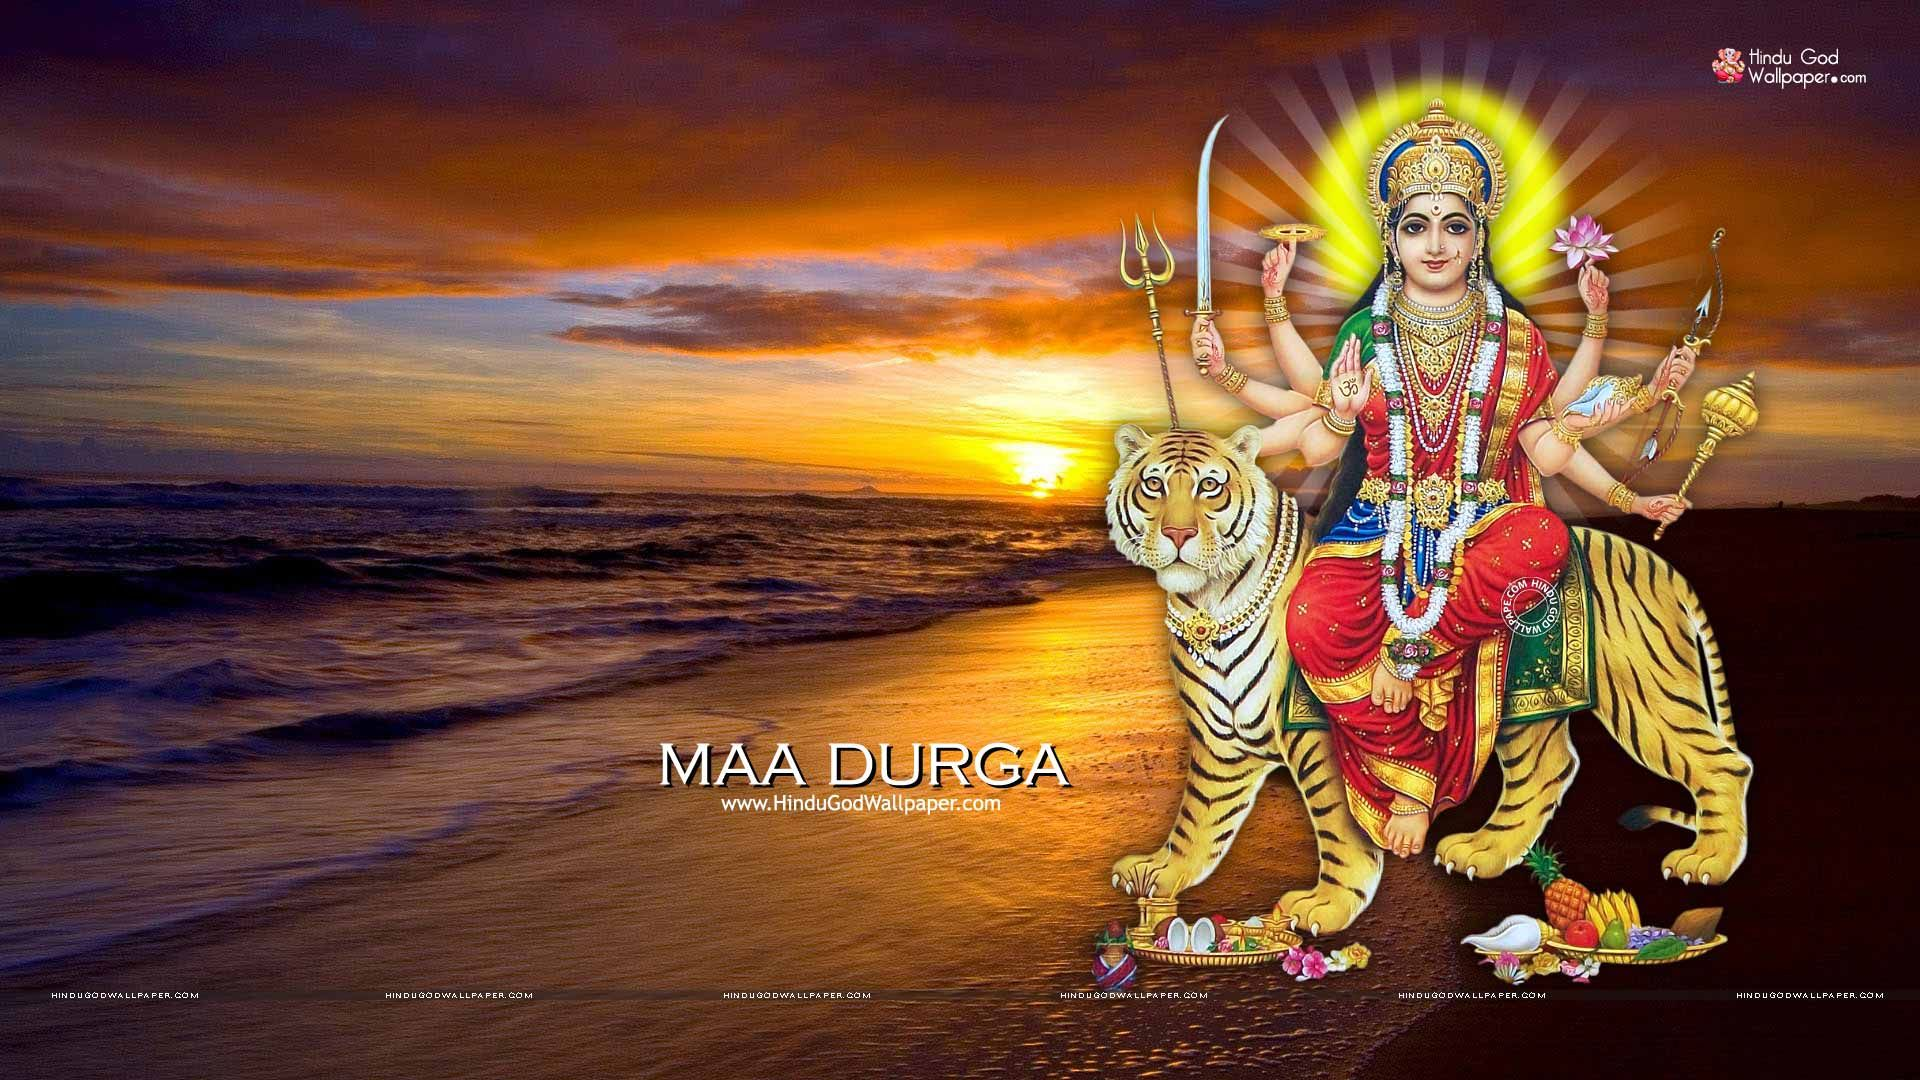 maa durga hd wallpaper 1080p maa durga hd wallpaper 1080p in 2018